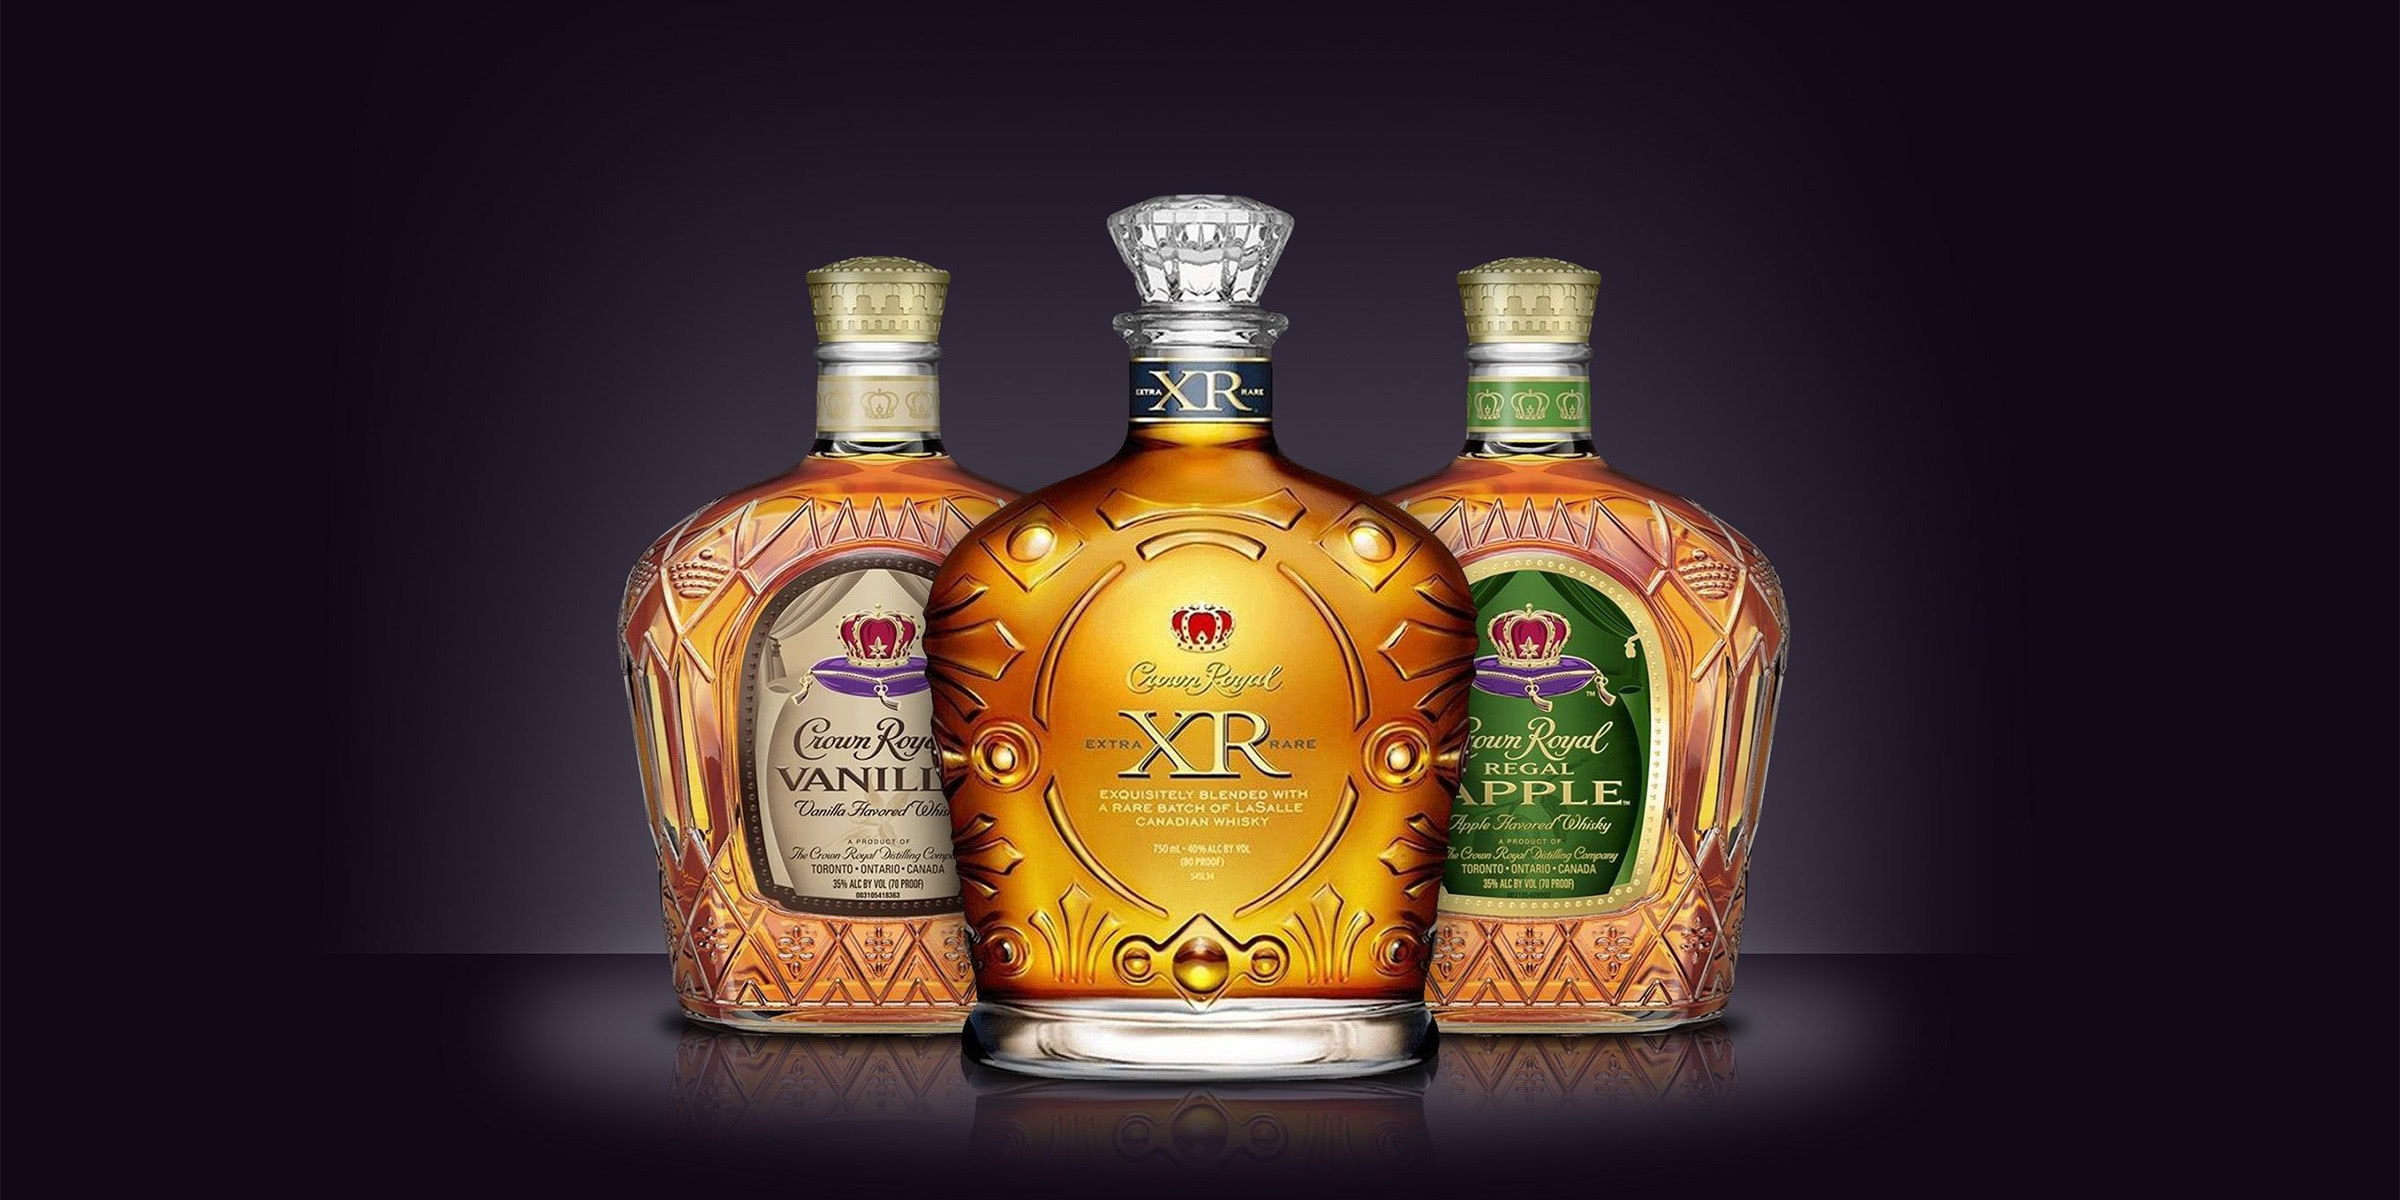 crown royal whisky - Luxe Digital